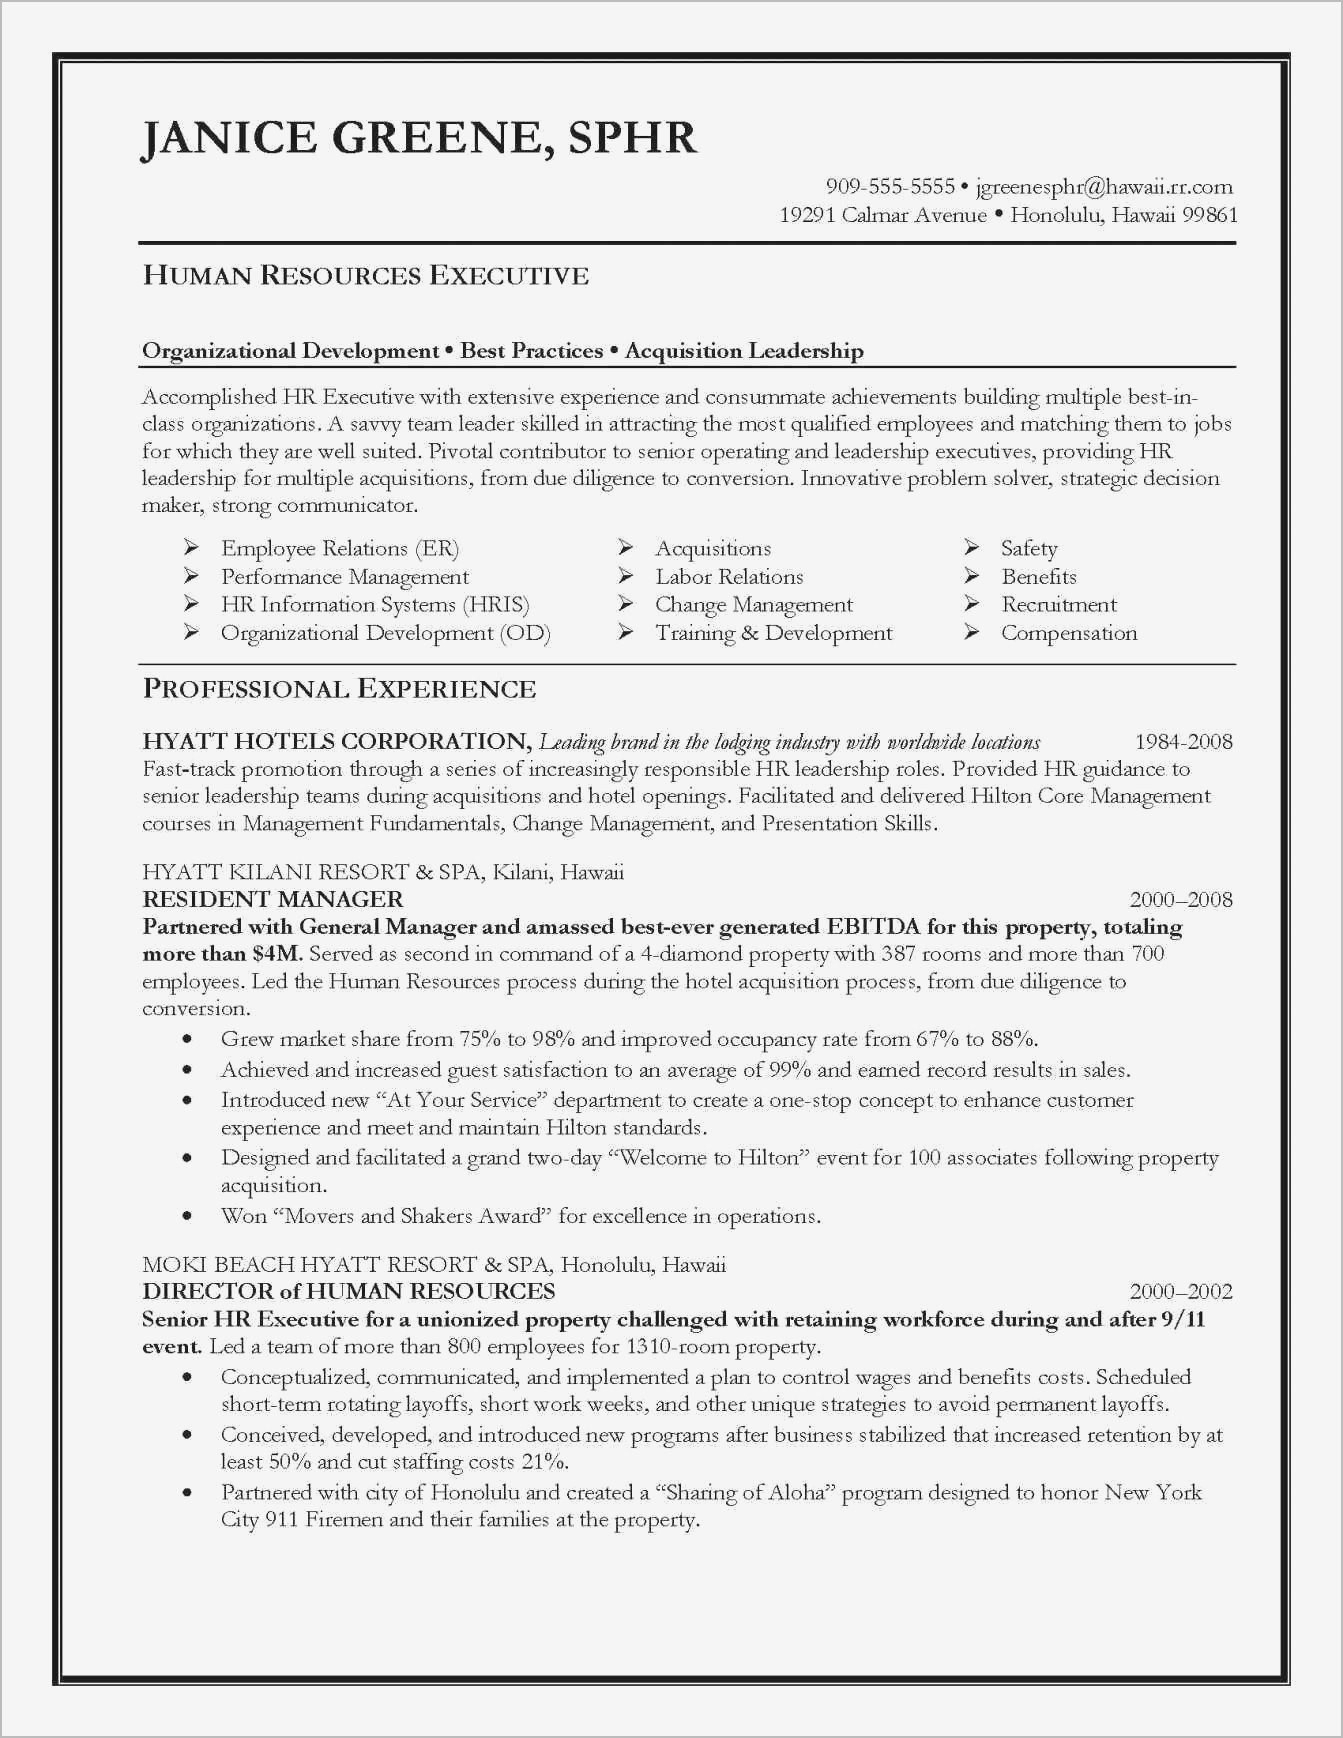 Minimalist Resume - Winway Resume Free Best where Can I Post My Resume Beautiful